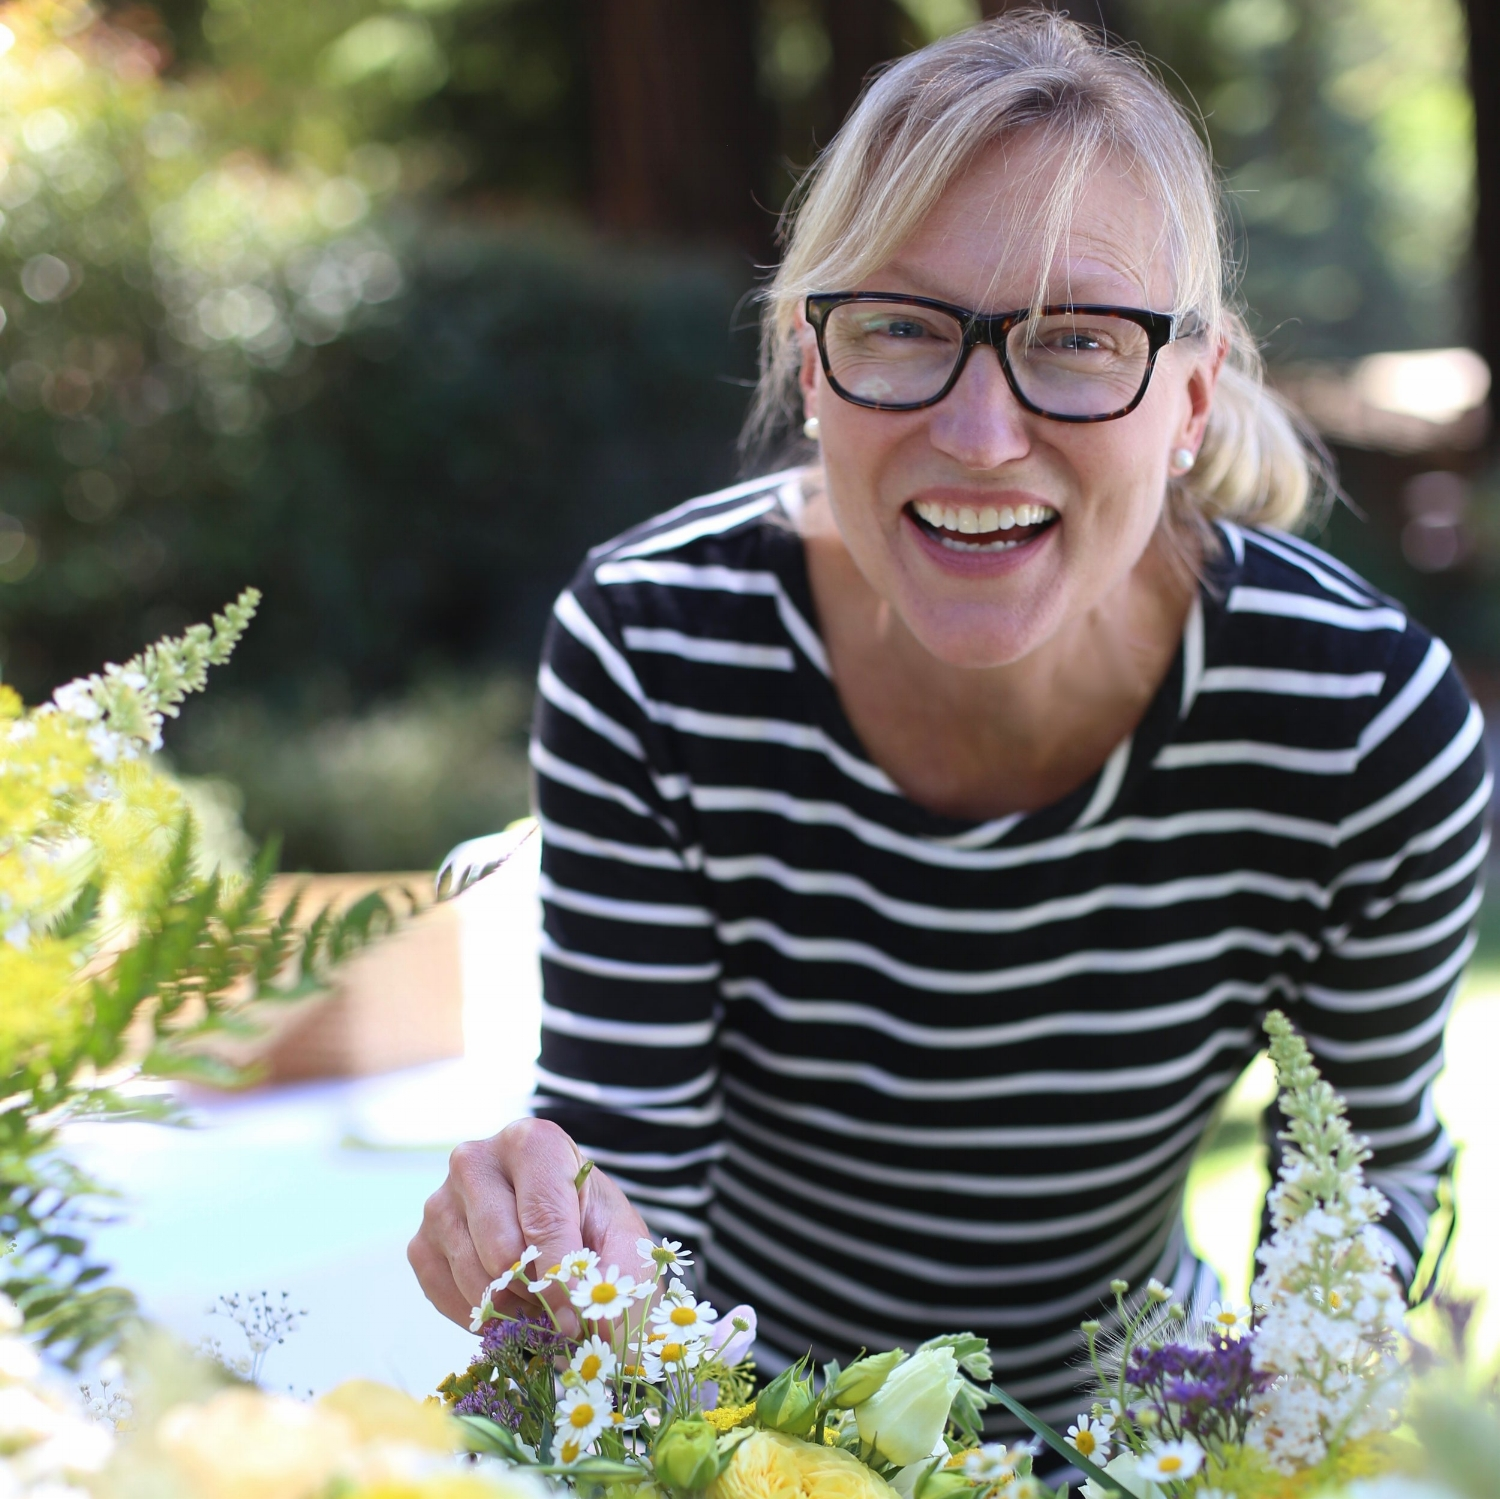 Floral designer and farmer Dyana Zweng A BIT OF EARTH FLOWERS, local and seasonal flowers